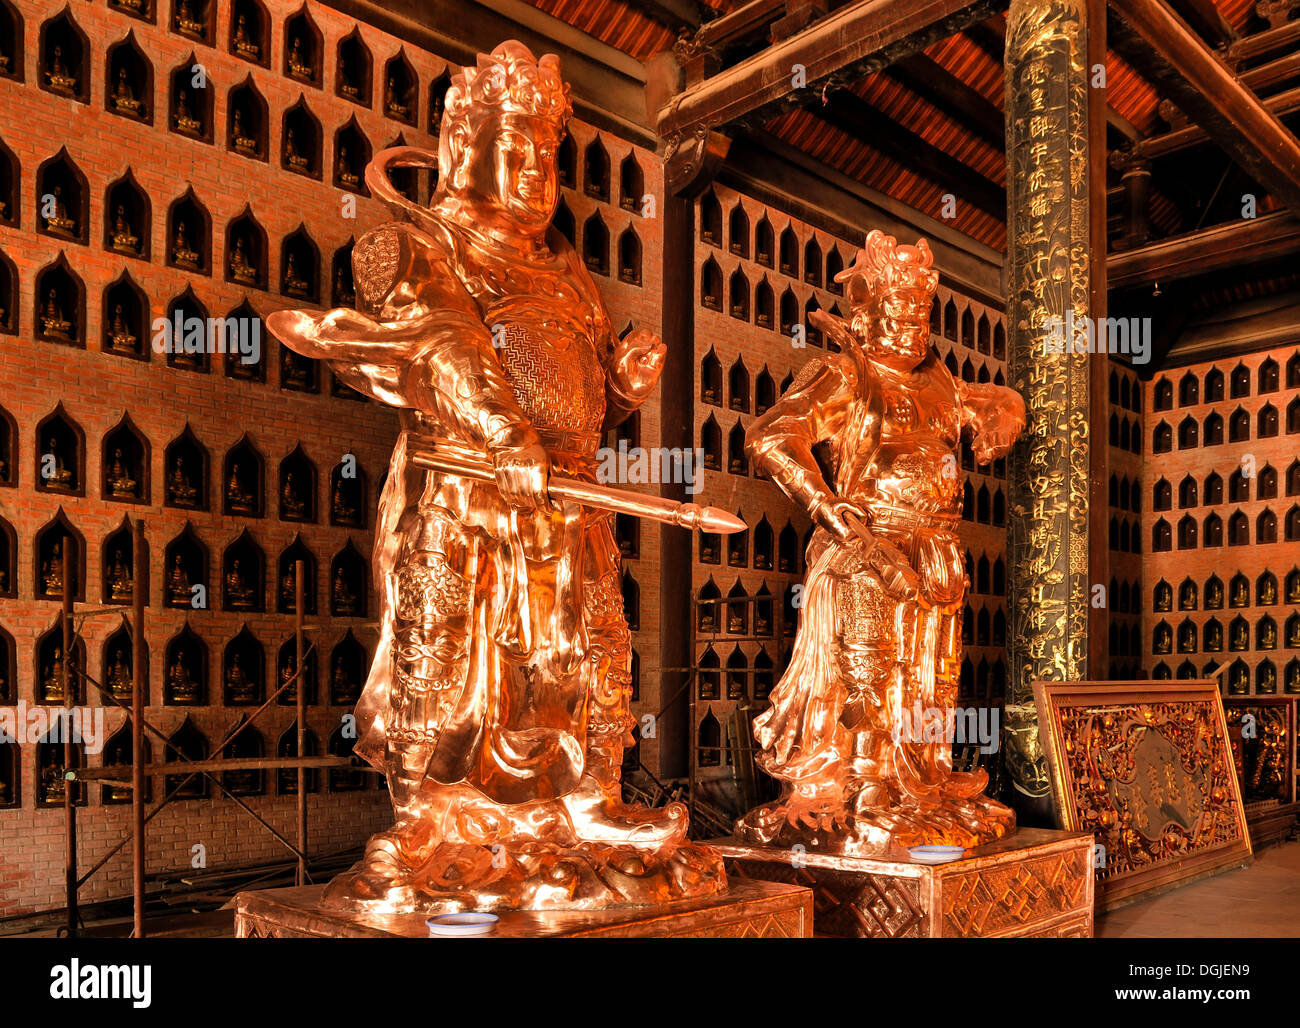 Restored statues on the construction site of the Chua Bai Dinh pagoda, one of the largest pagodas in Southeast Asia - Stock Image